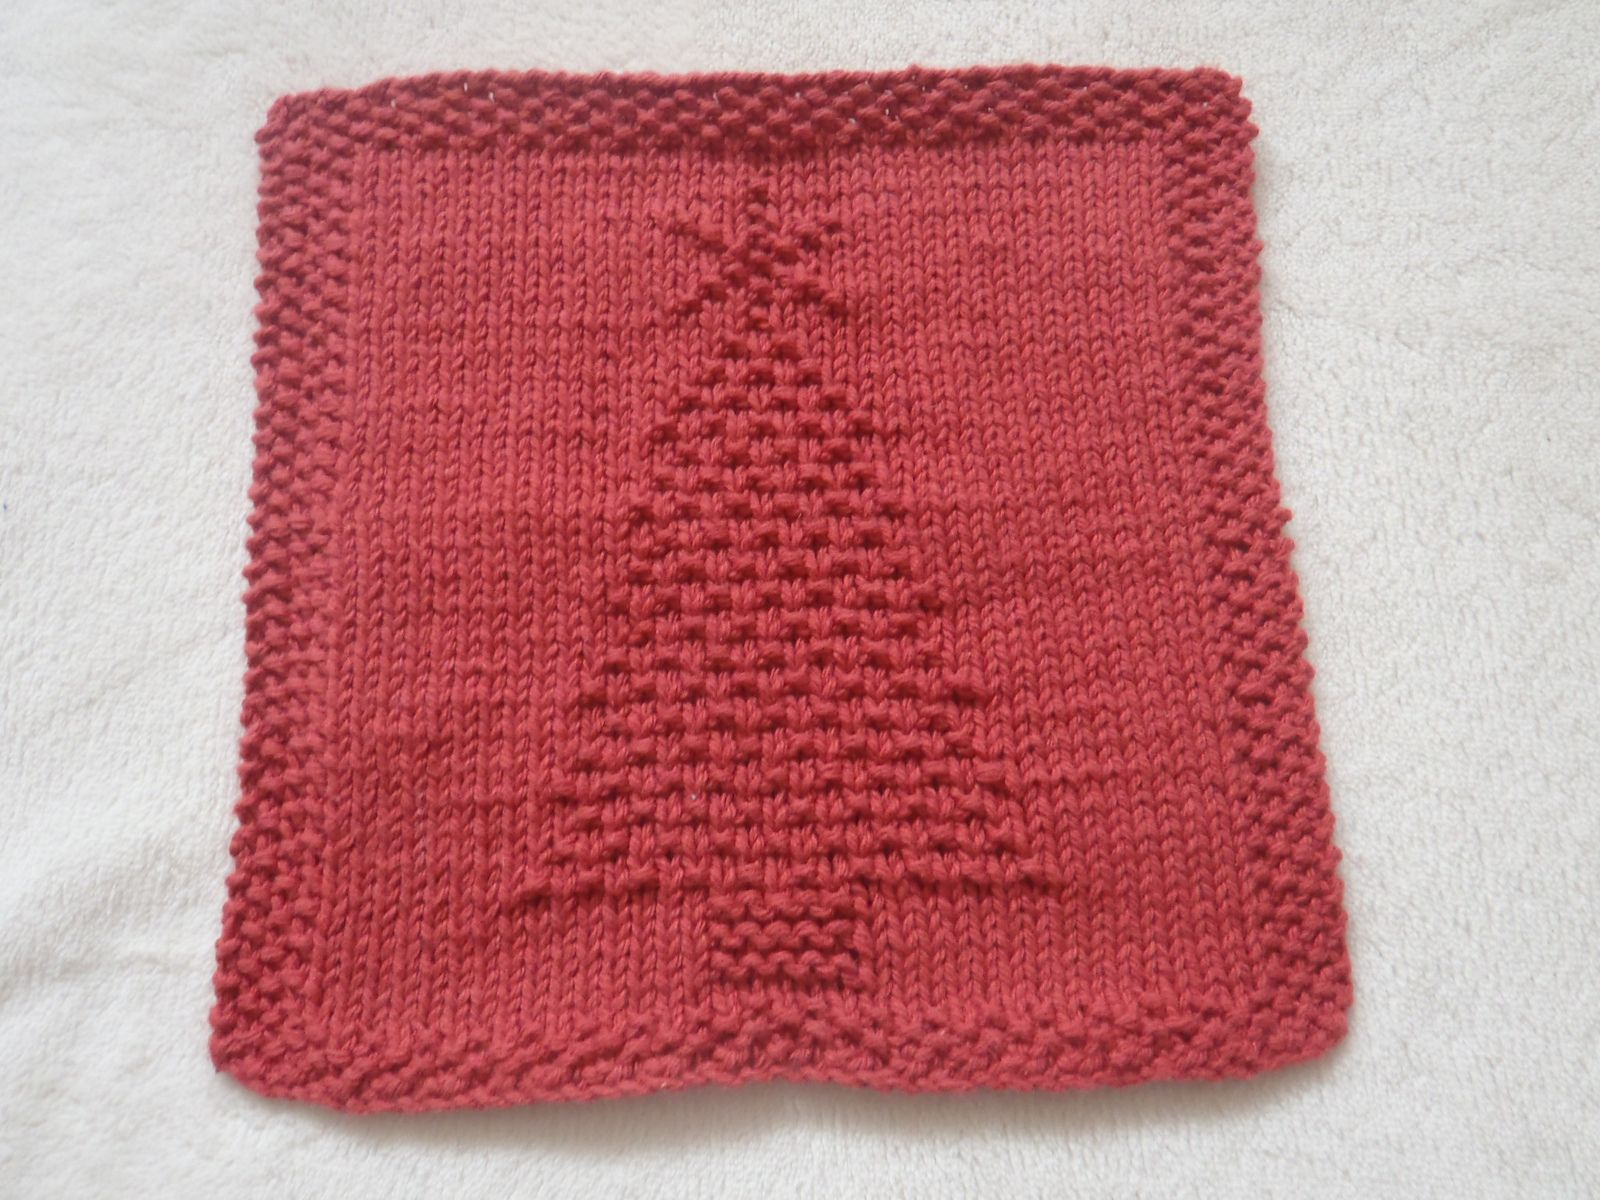 Christmas Tree Dishcloth pattern by Louise Sarrazin | Ravelry ...